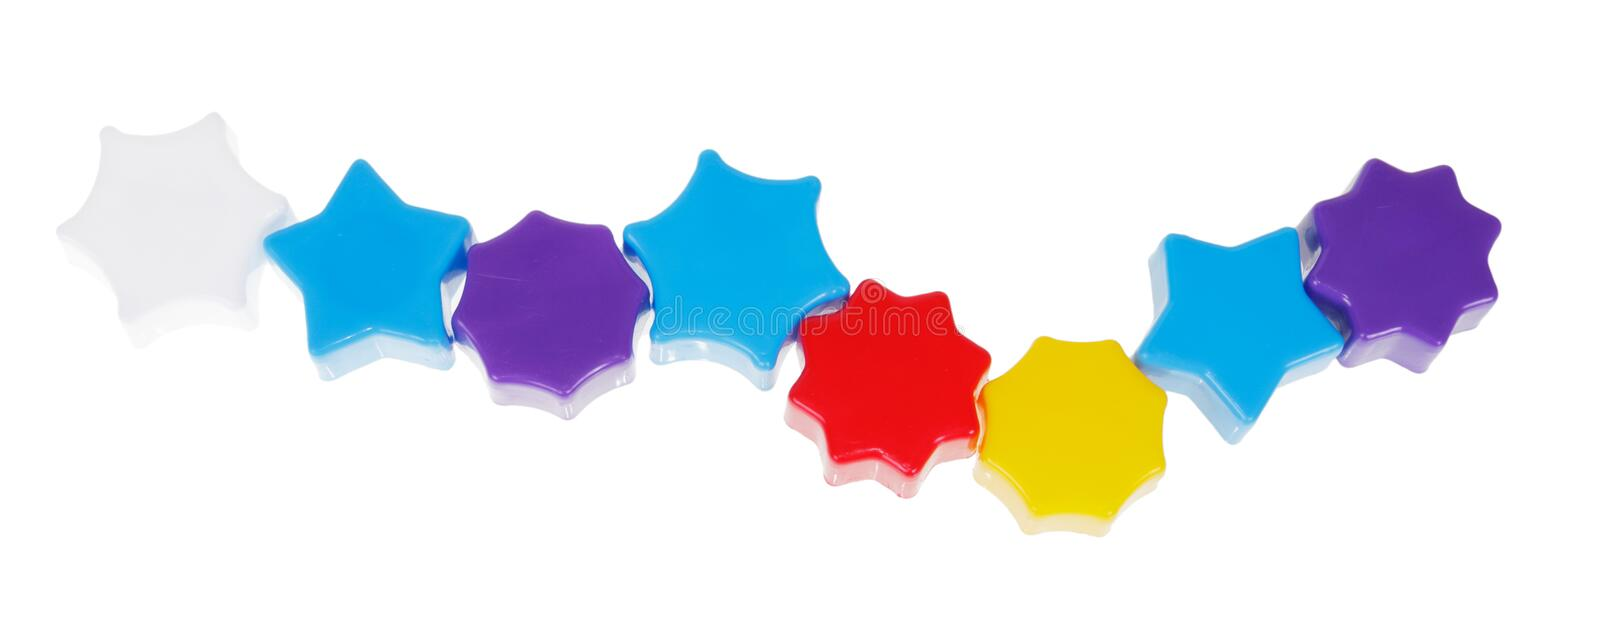 Colorful plastic toys. Set of colorful plastic construction toys isolated on white background royalty free stock images